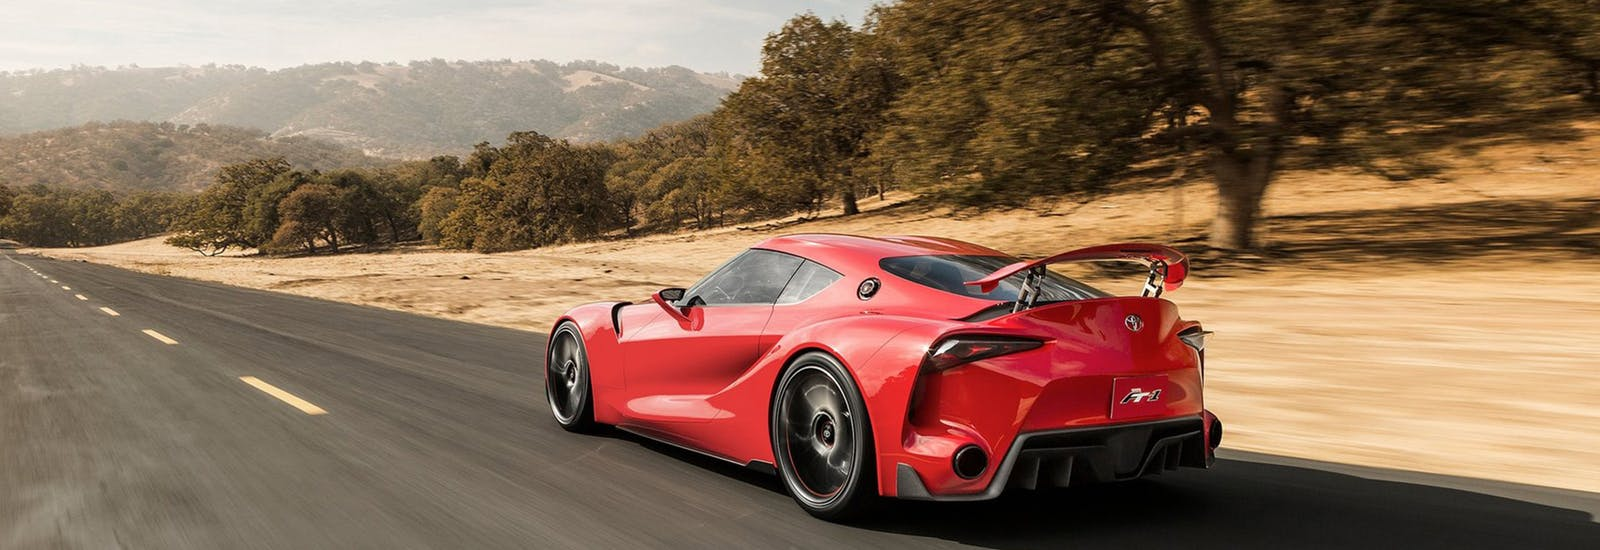 2017 toyota supra price specs release date carwow. Black Bedroom Furniture Sets. Home Design Ideas